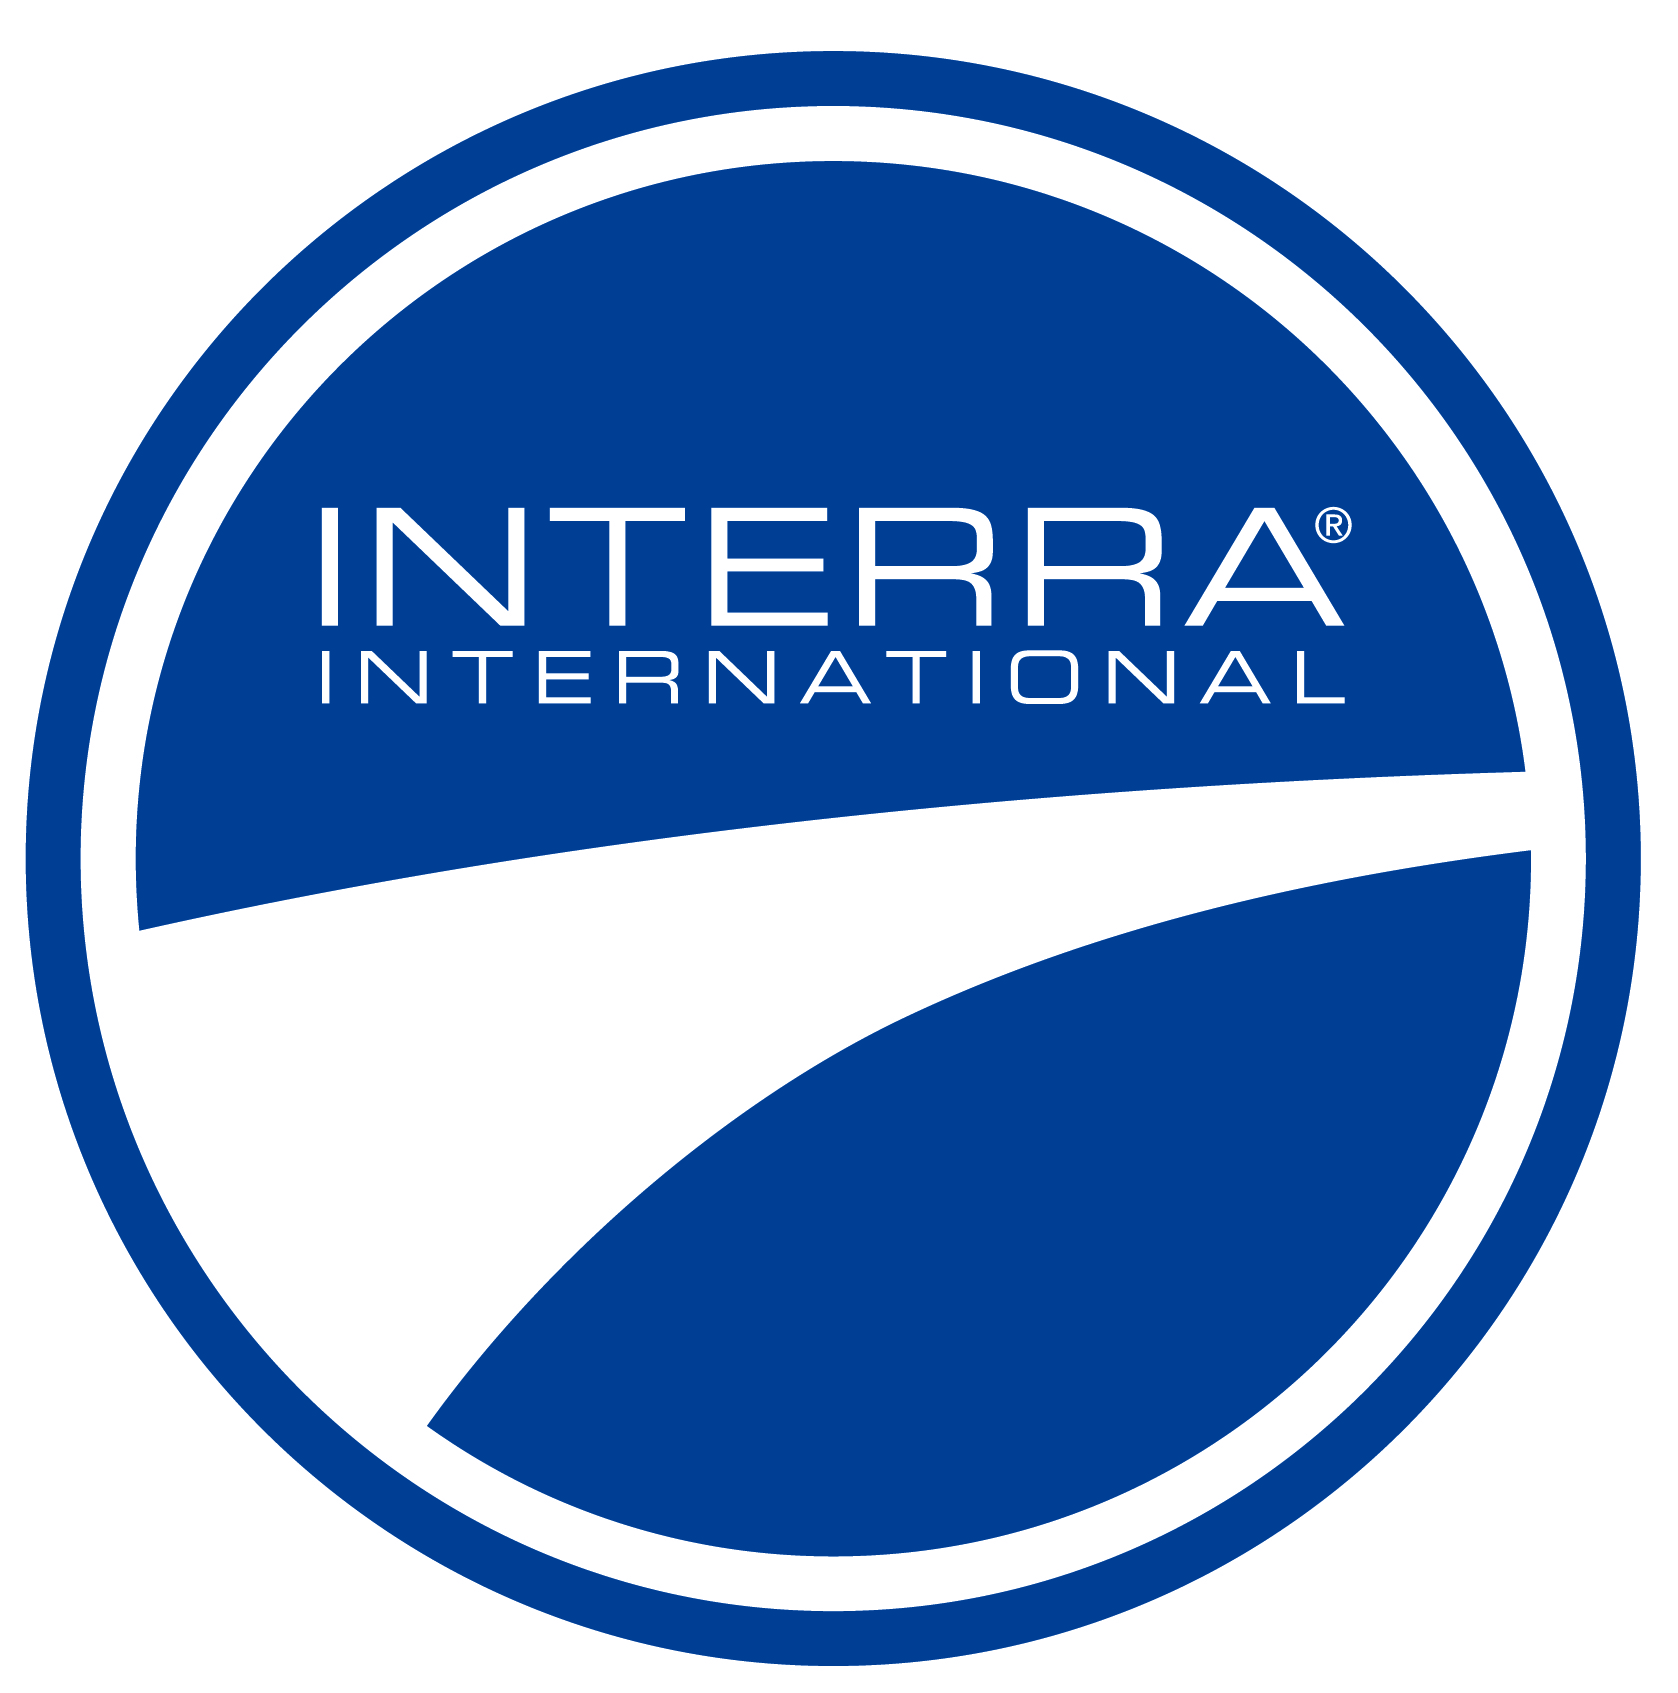 Interra World Map - Global Food Distributor